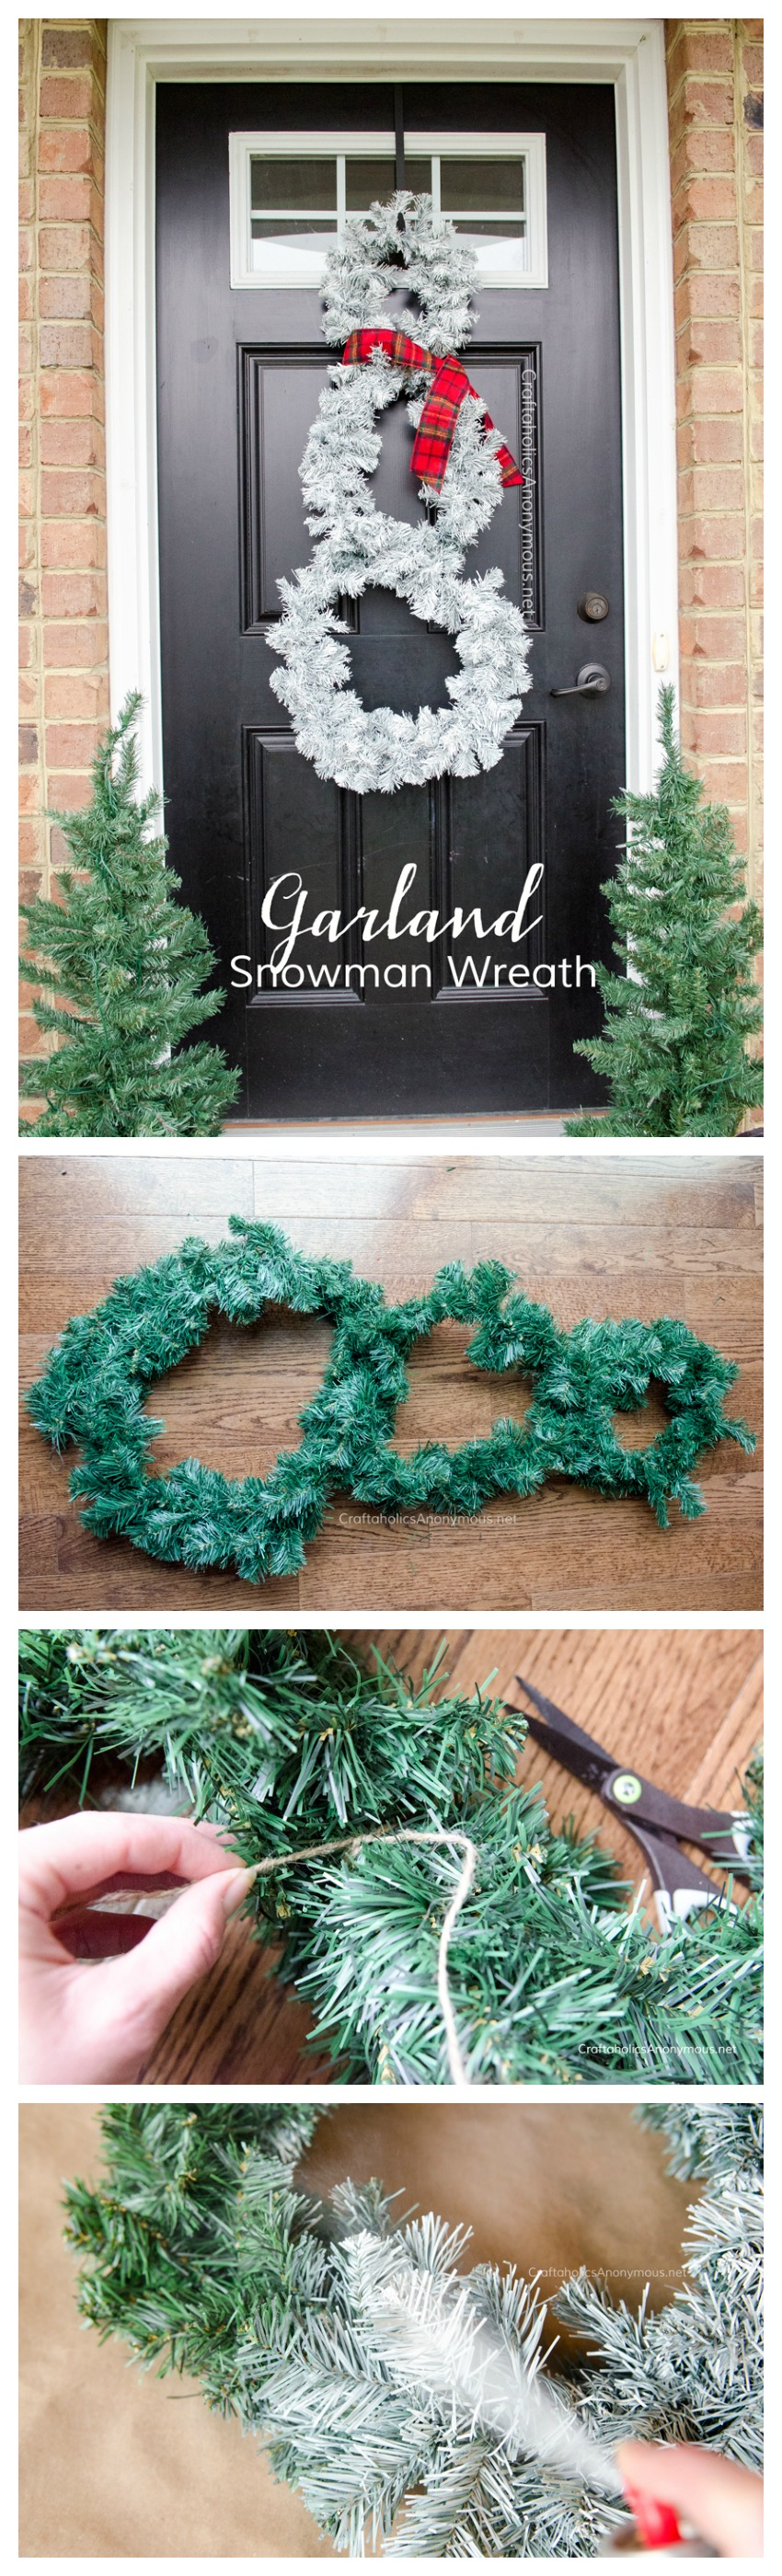 DIY Snowman Wreath tutorial using a garland. Cheap Christmas wreath idea! Or Winter Wreath.